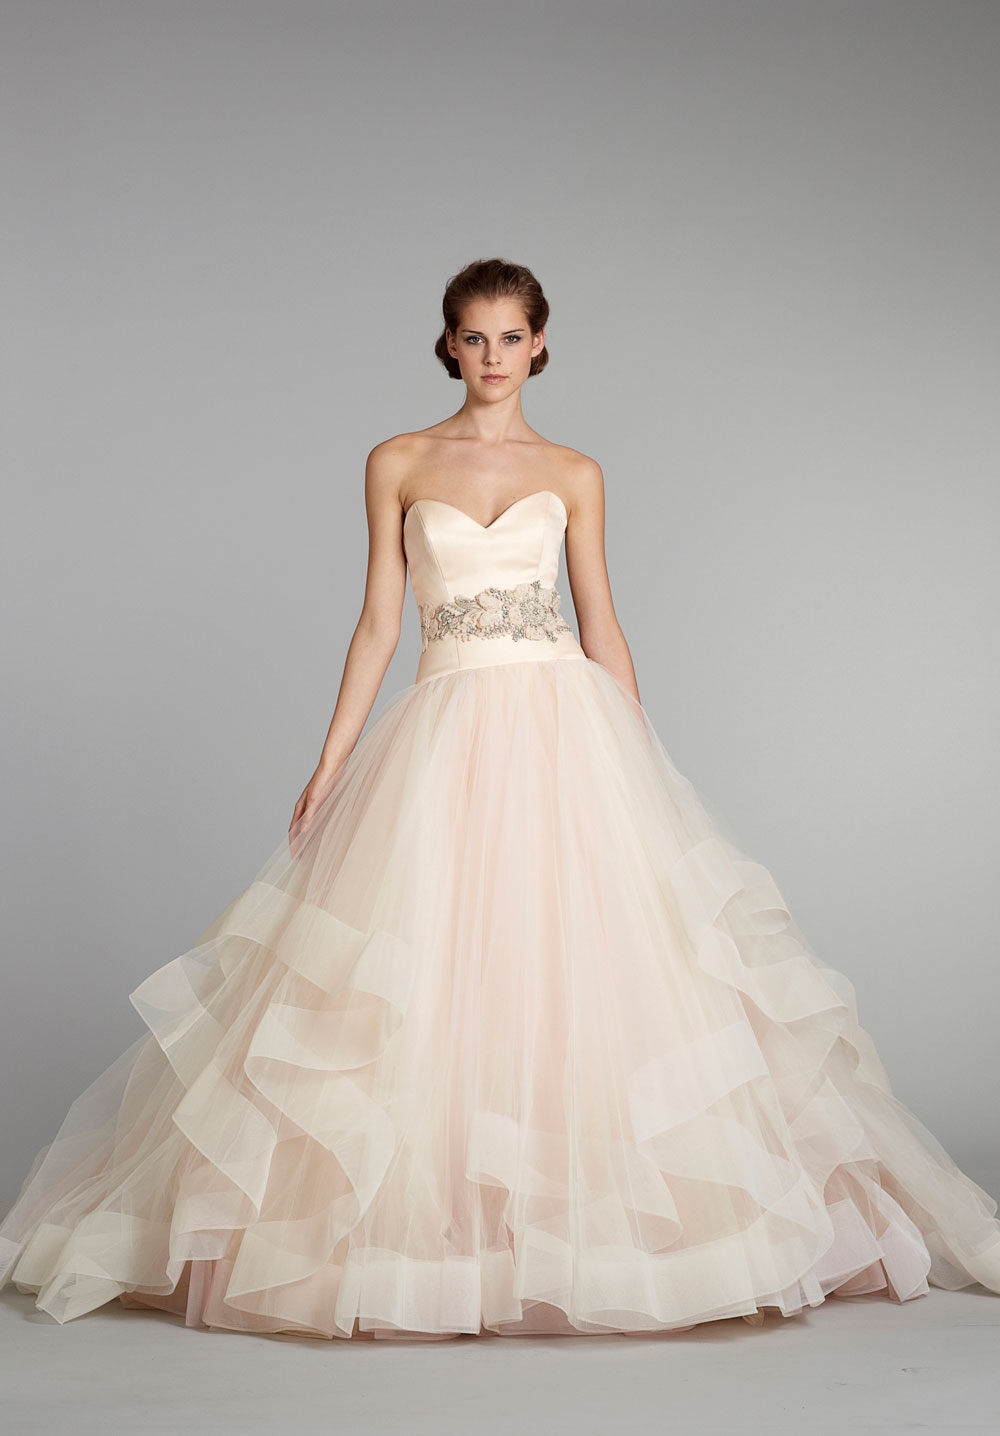 Lazaro wedding dresses dressed up girl for Pink wedding dresses pictures